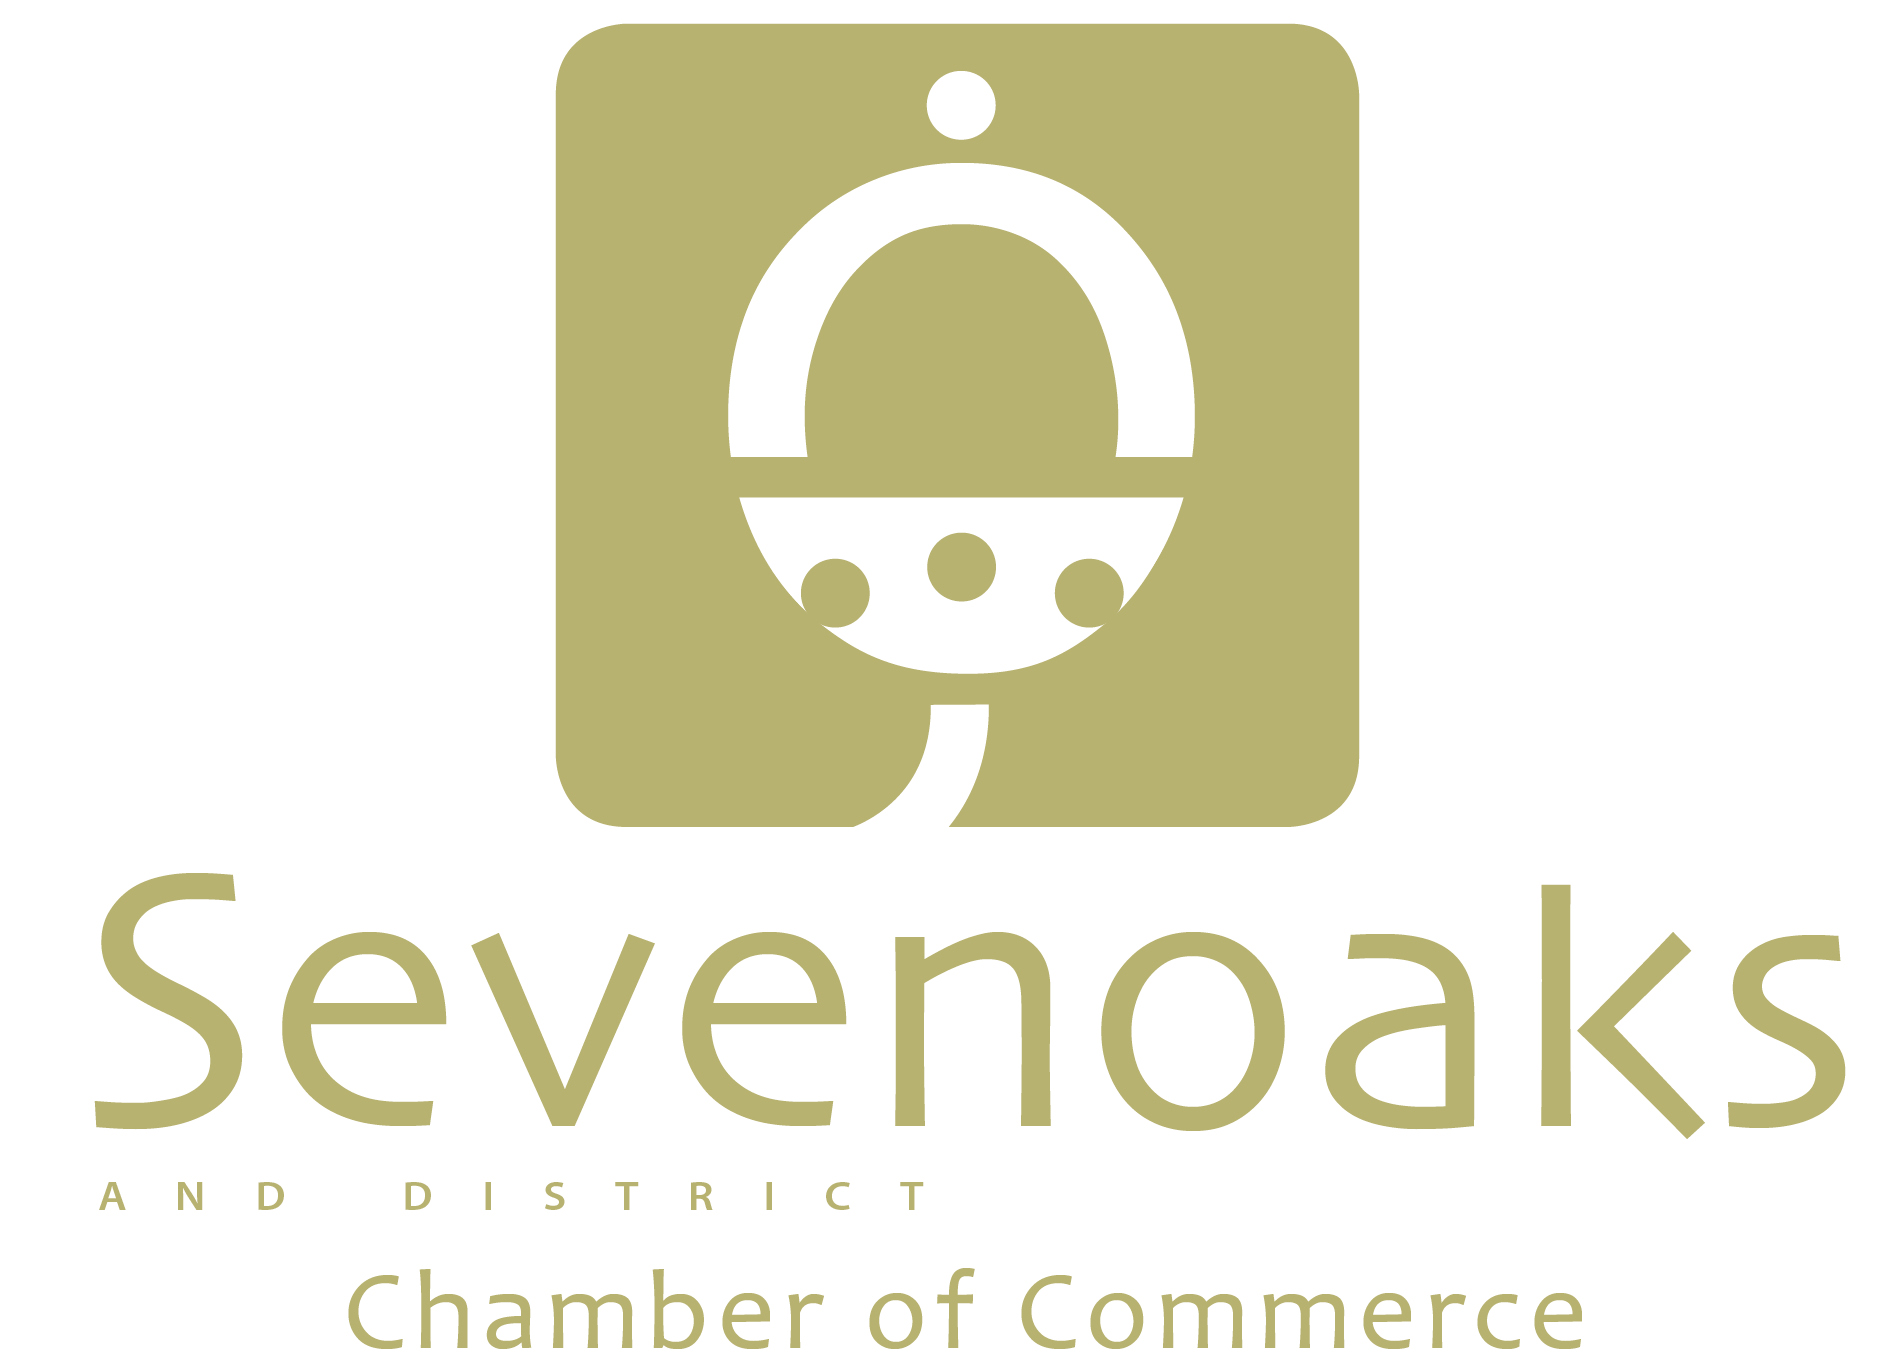 SEVENOAKS CHAMBER OF COMMERCE